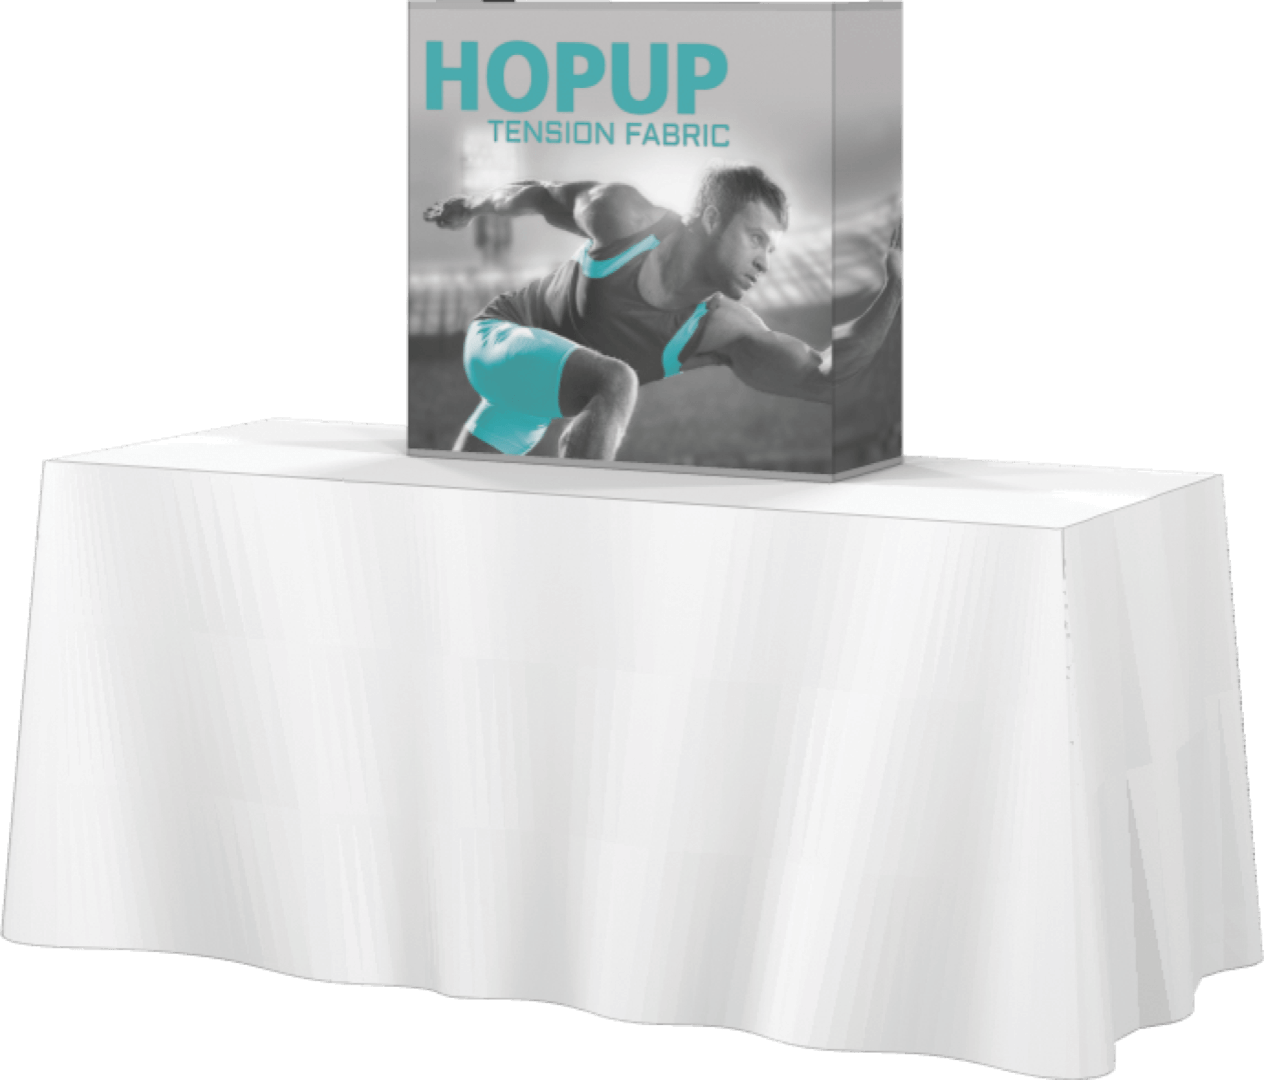 Hop Up Tension Table Top Display